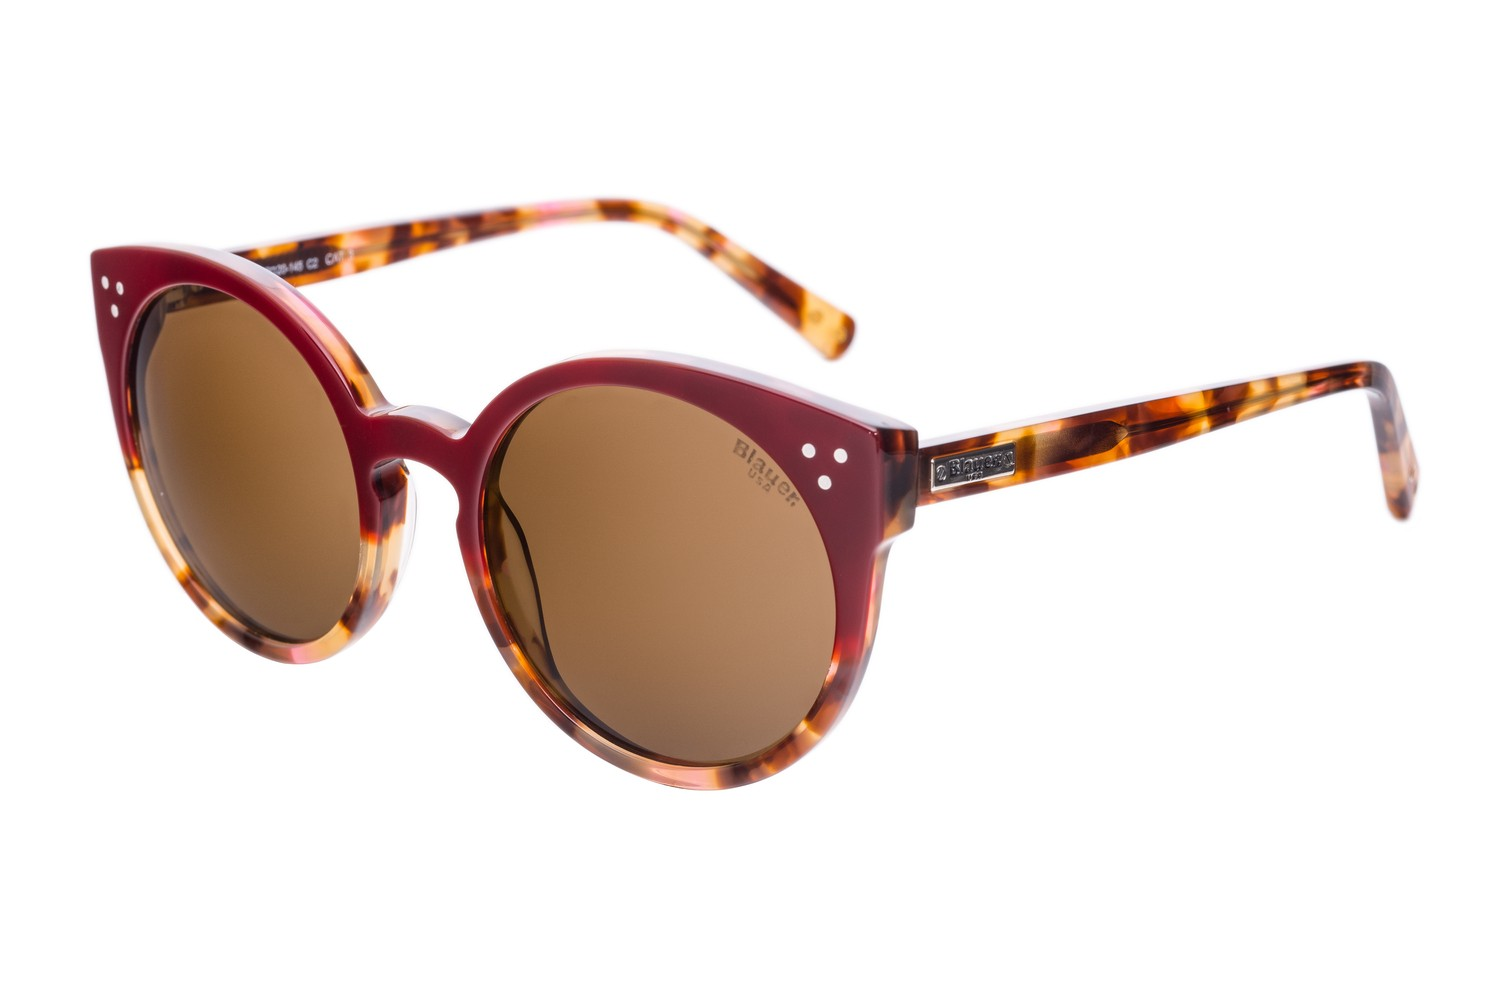 Sunglasses Collection Buy Online Blauer USA - What is invoice processing online glasses store